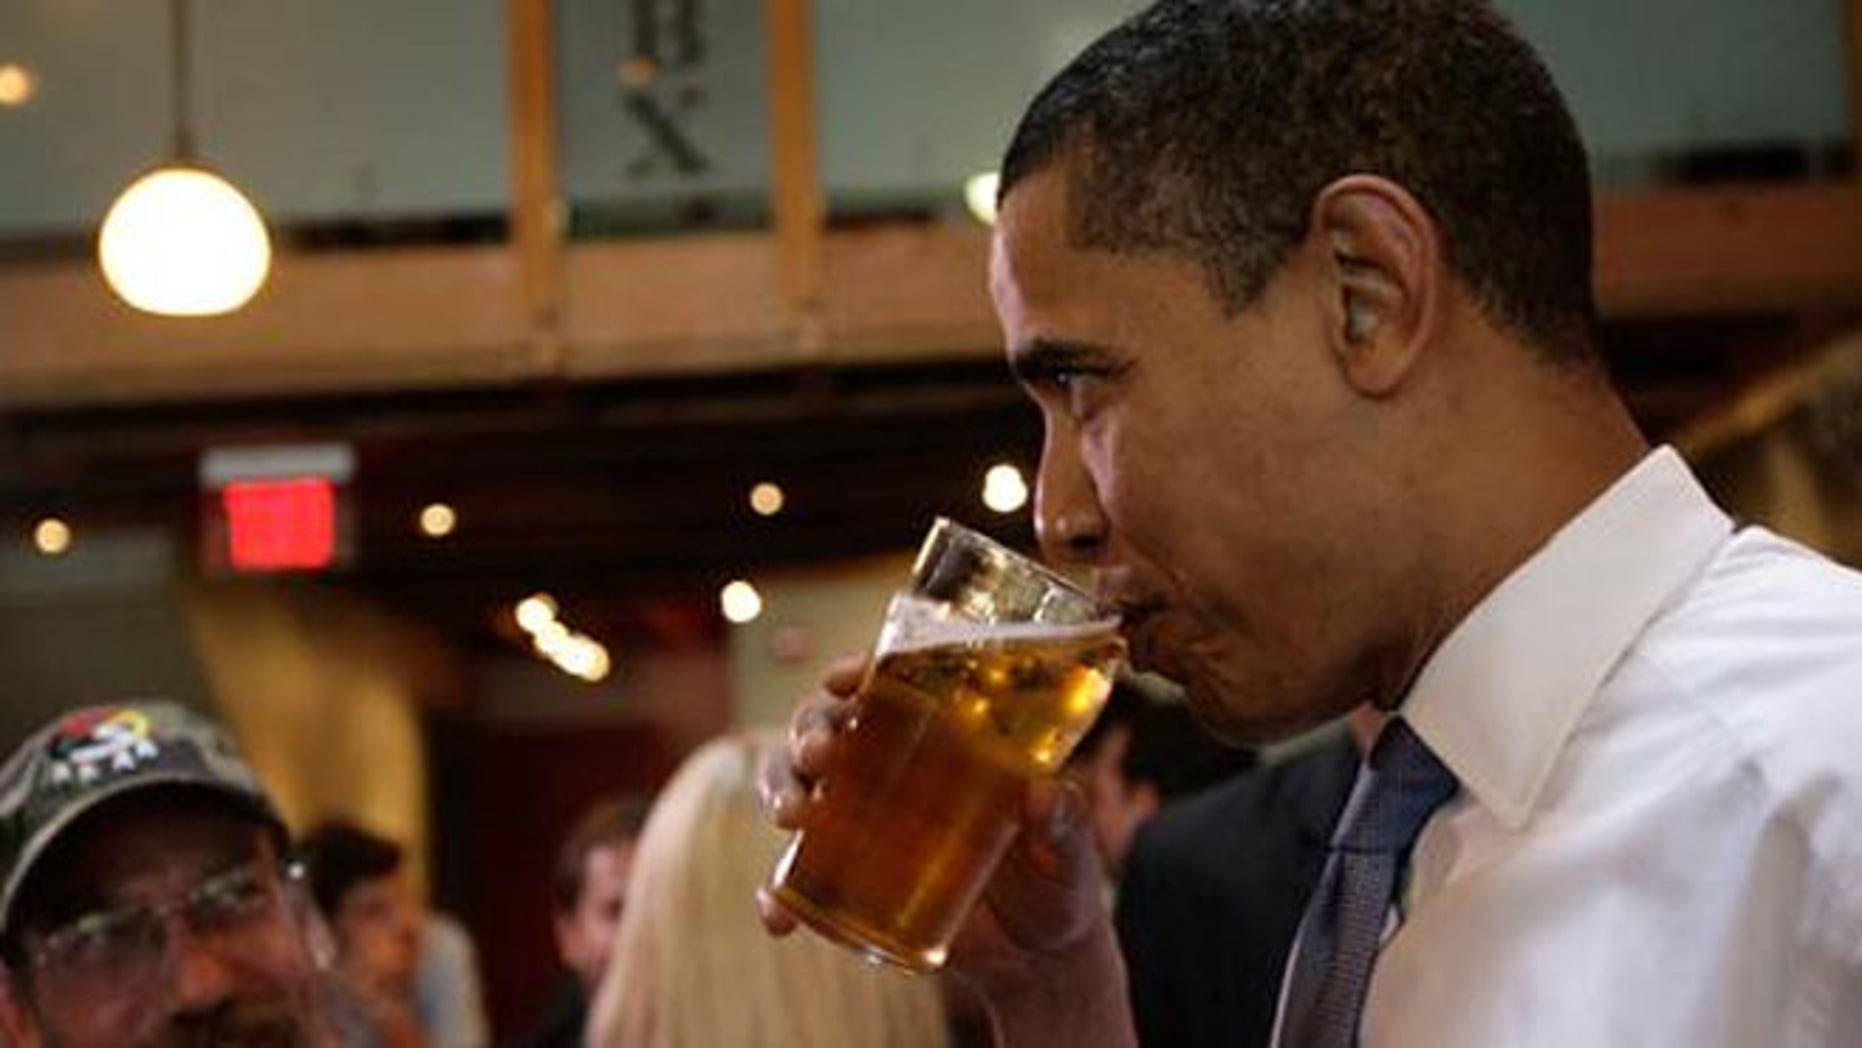 FILE: President Obama, who takes a sip of beer at  2011 event, is the first president to brew beer in the White House.